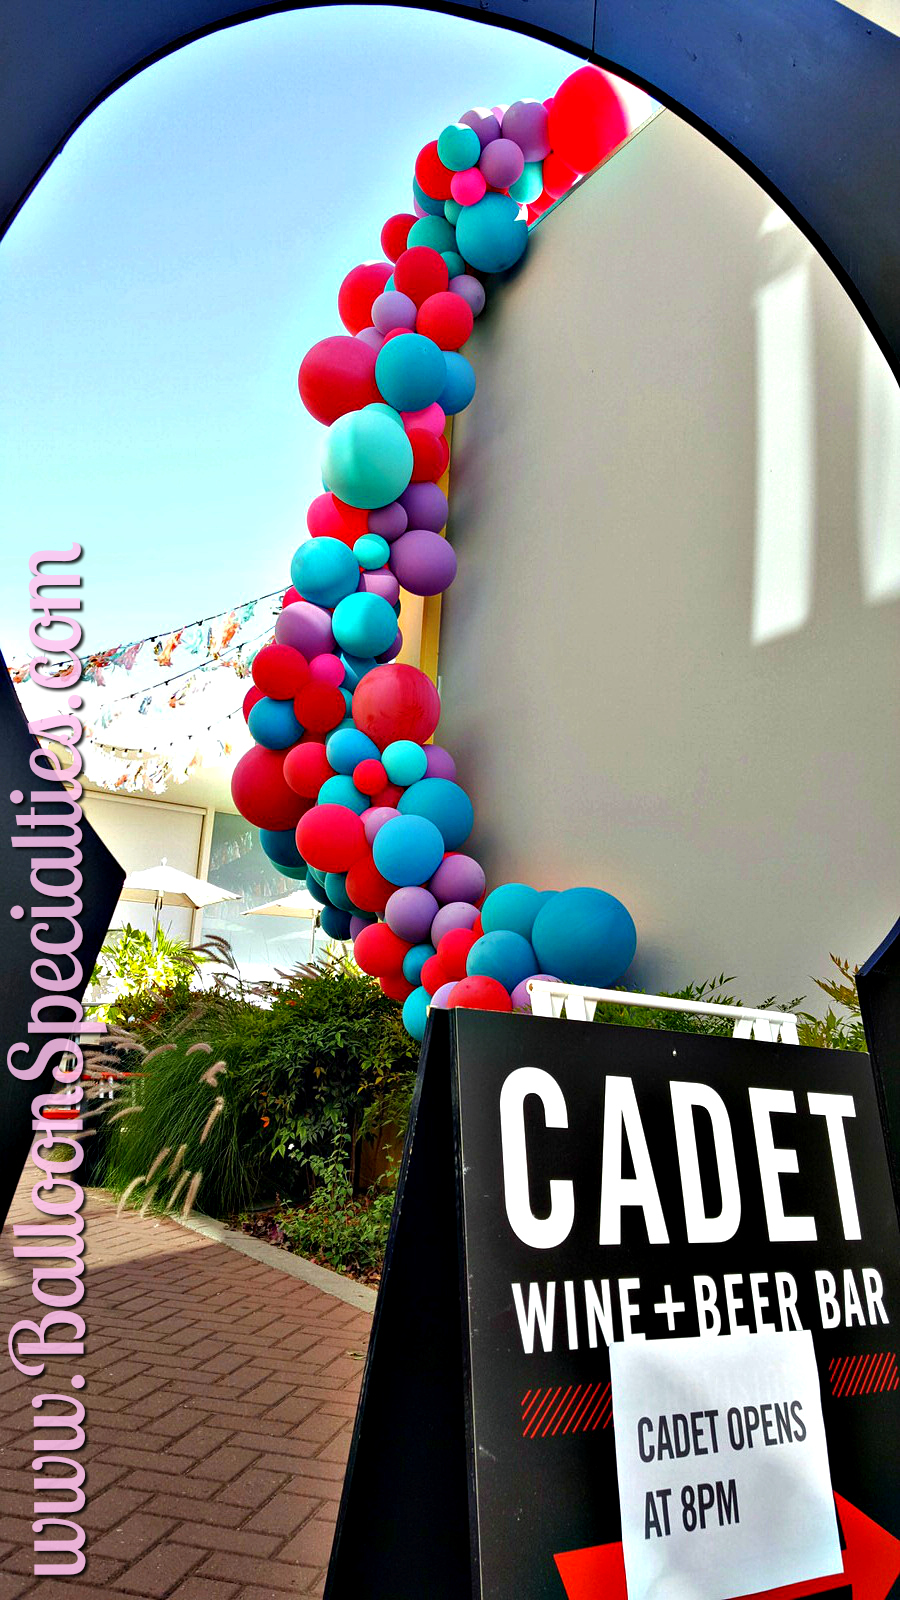 Cadet Wine Bar Balloon Garland Side View Napa Valley Zim Balloons.jpg